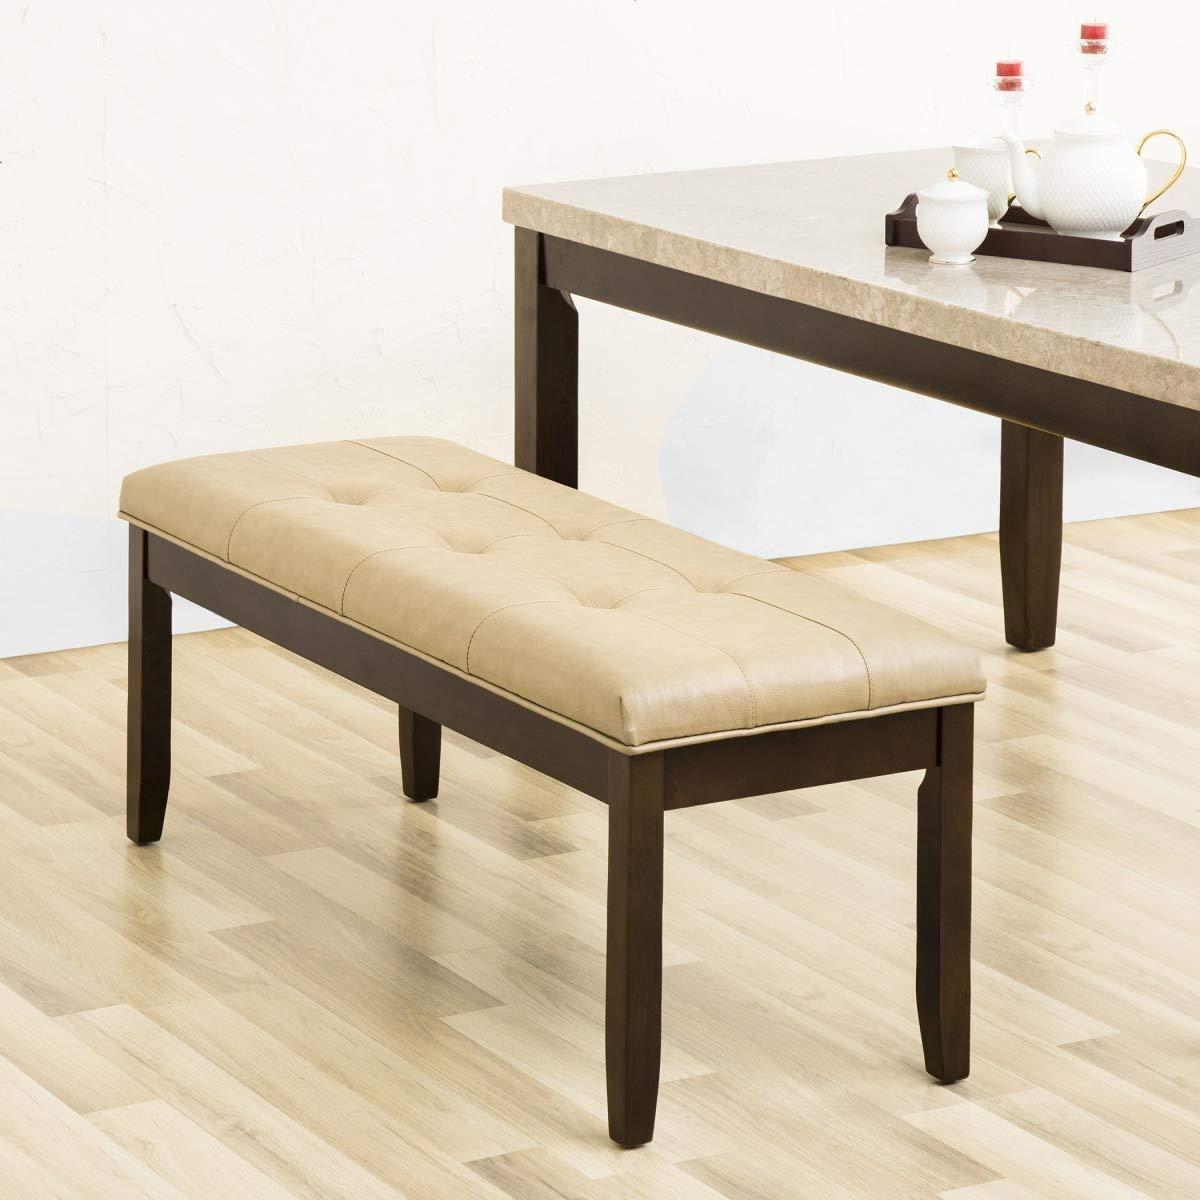 Toric Dining Bench (Finish : Dark Walnut)122x45x50 cm